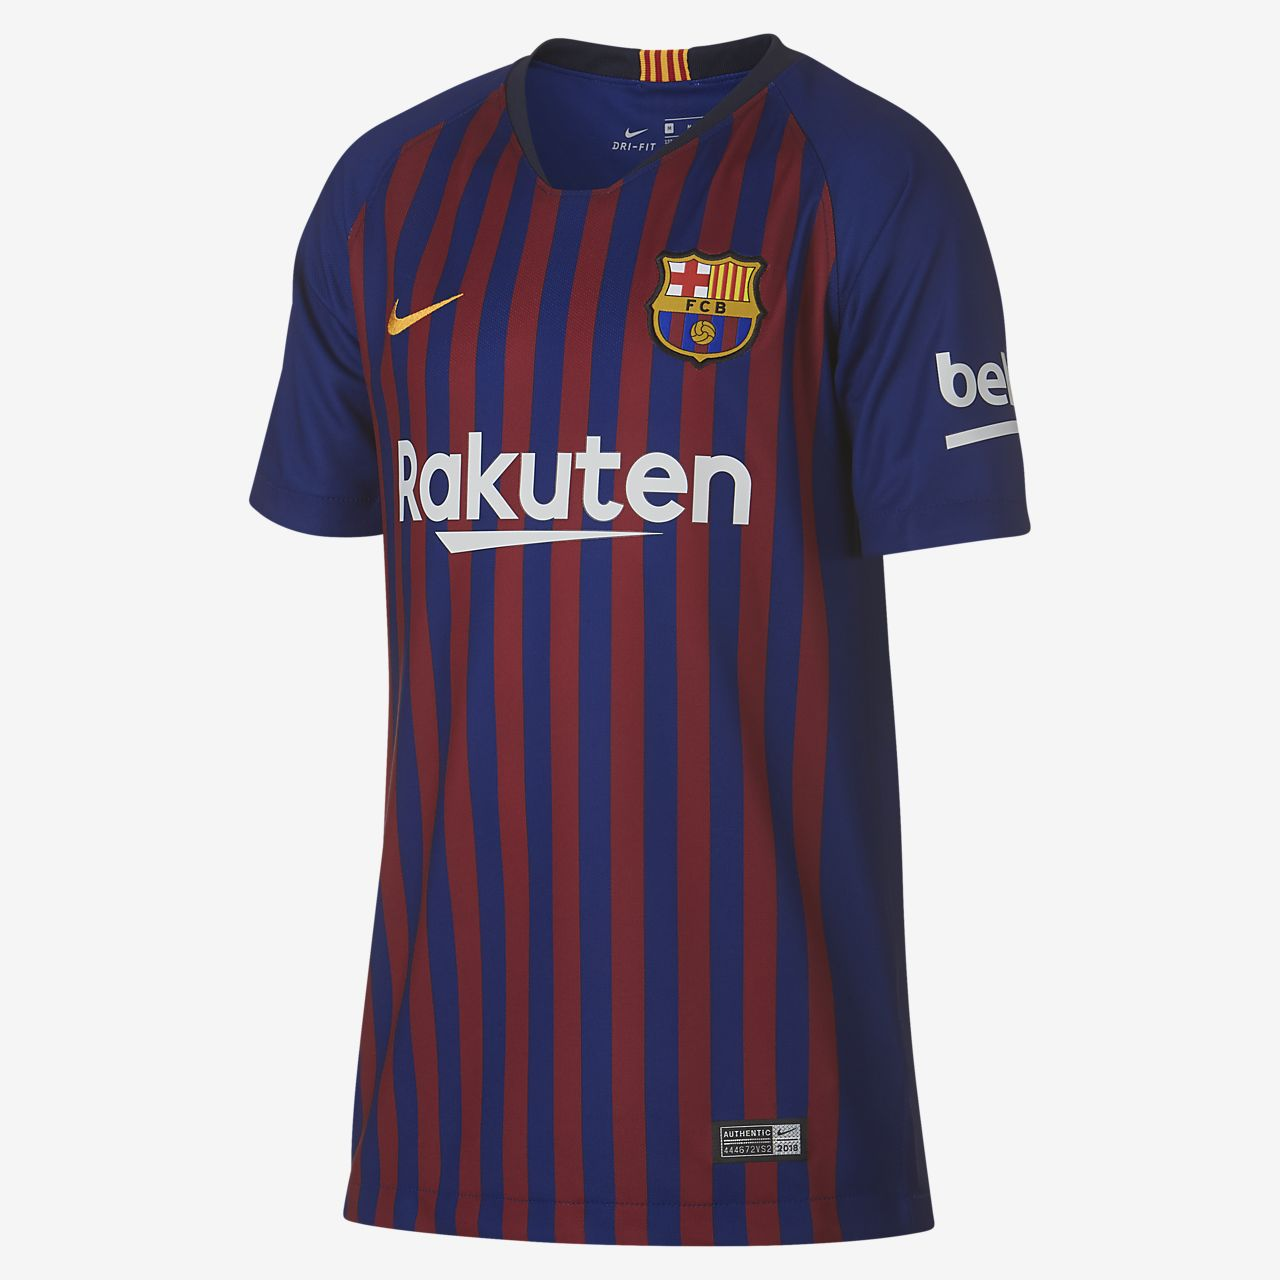 2018/19 FC Barcelona Stadium Home Big Kids' Soccer Jersey